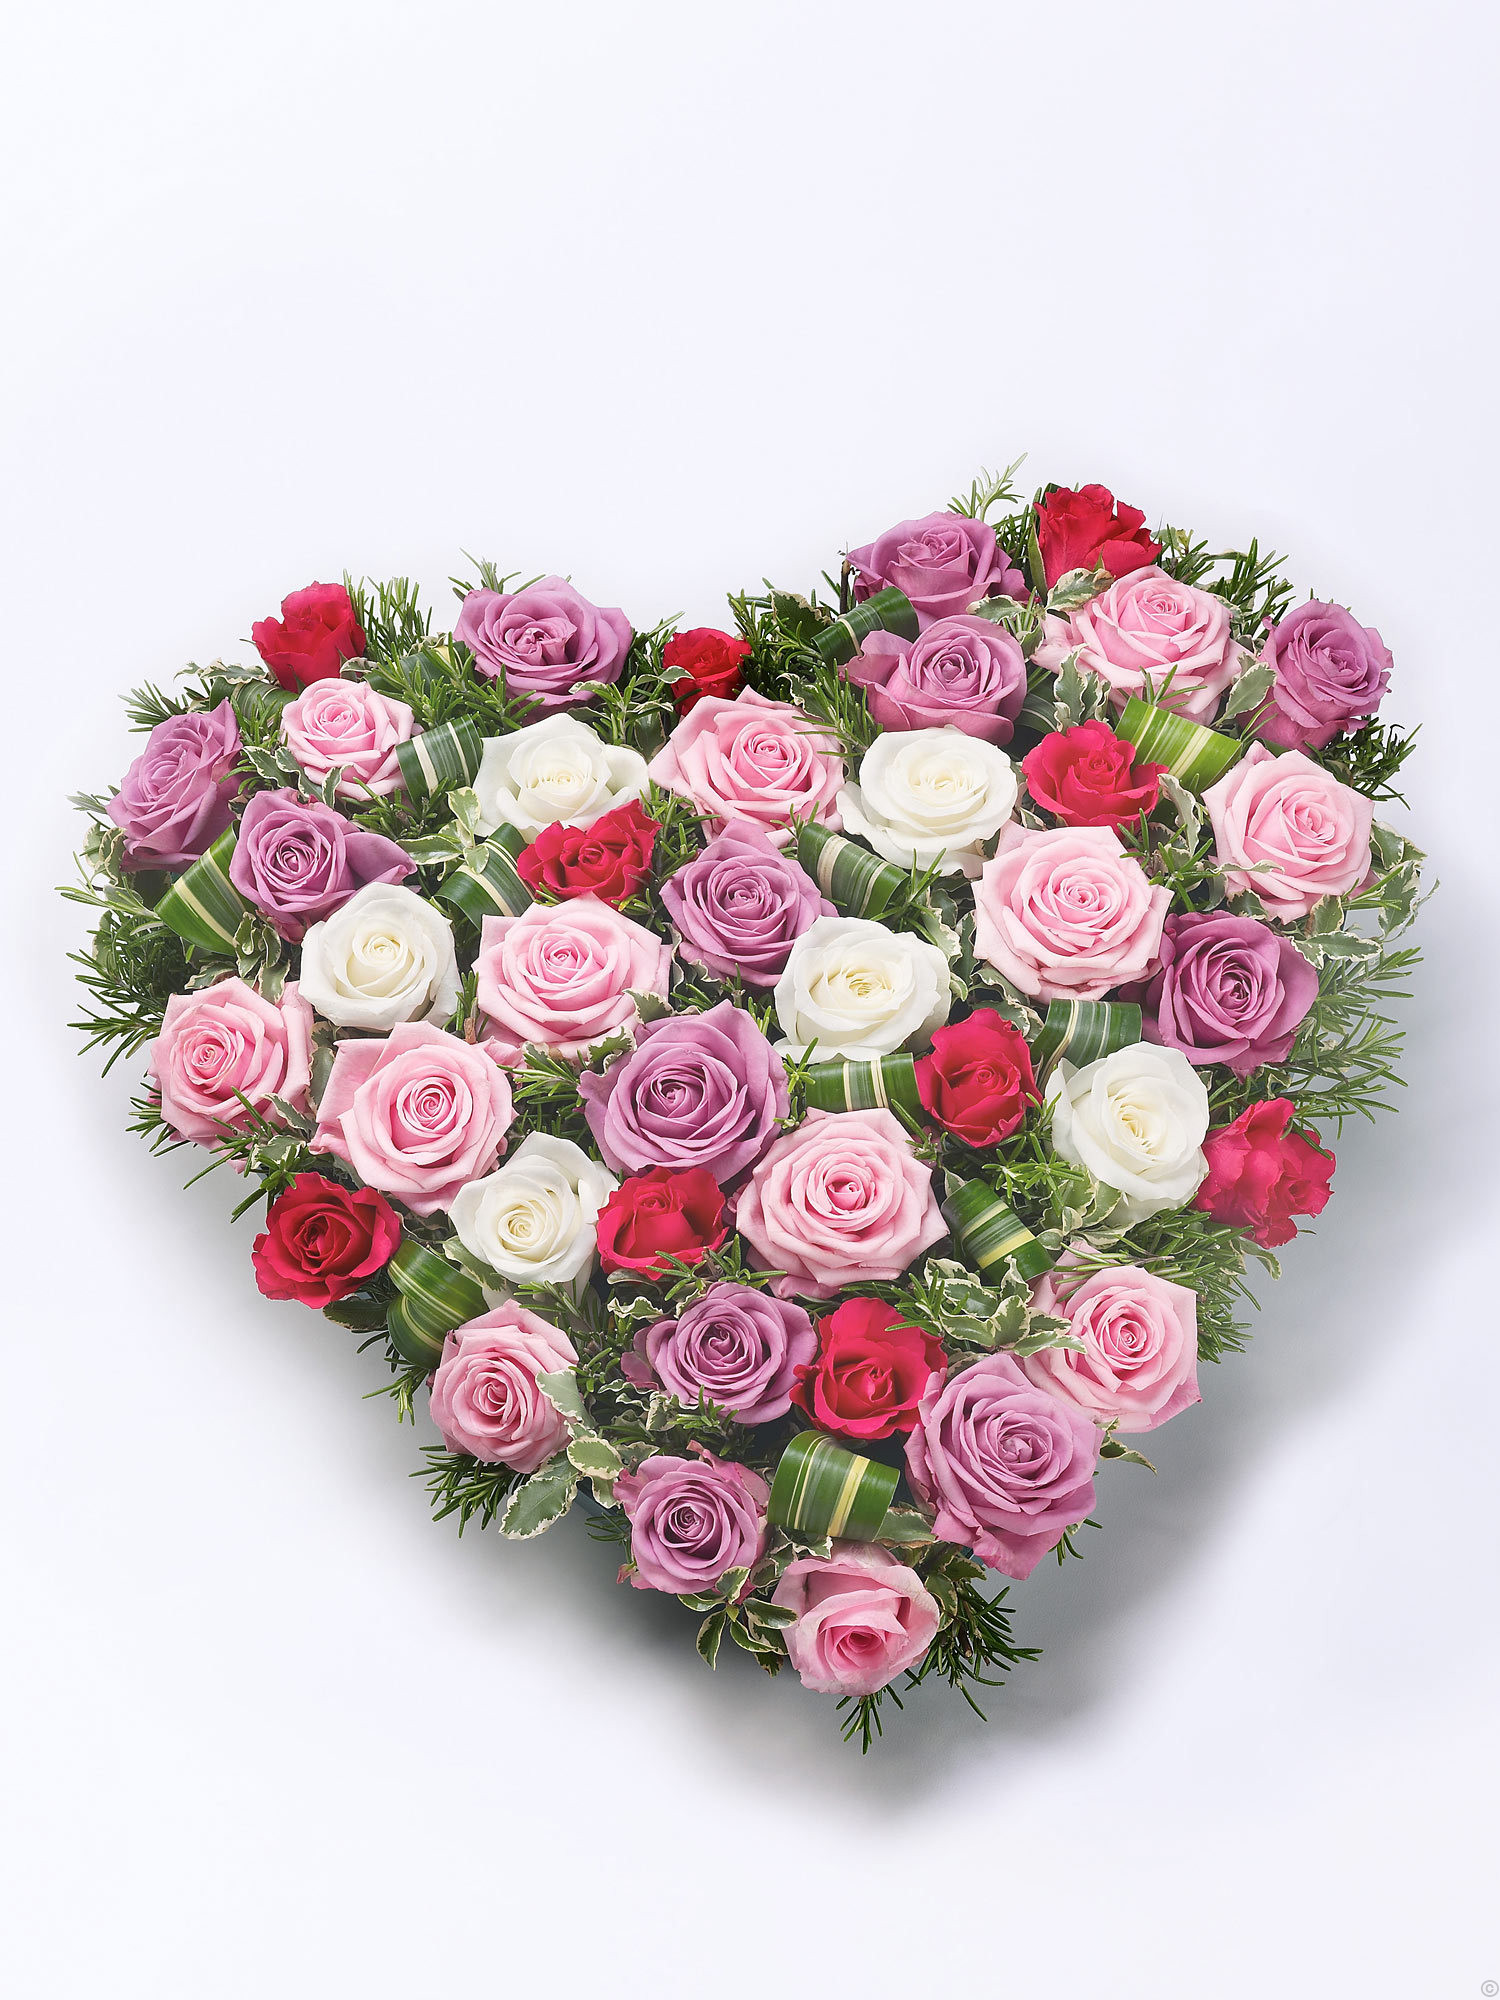 Hearts And Cushions Funeral Flowers From Mimosaflowers For Cork